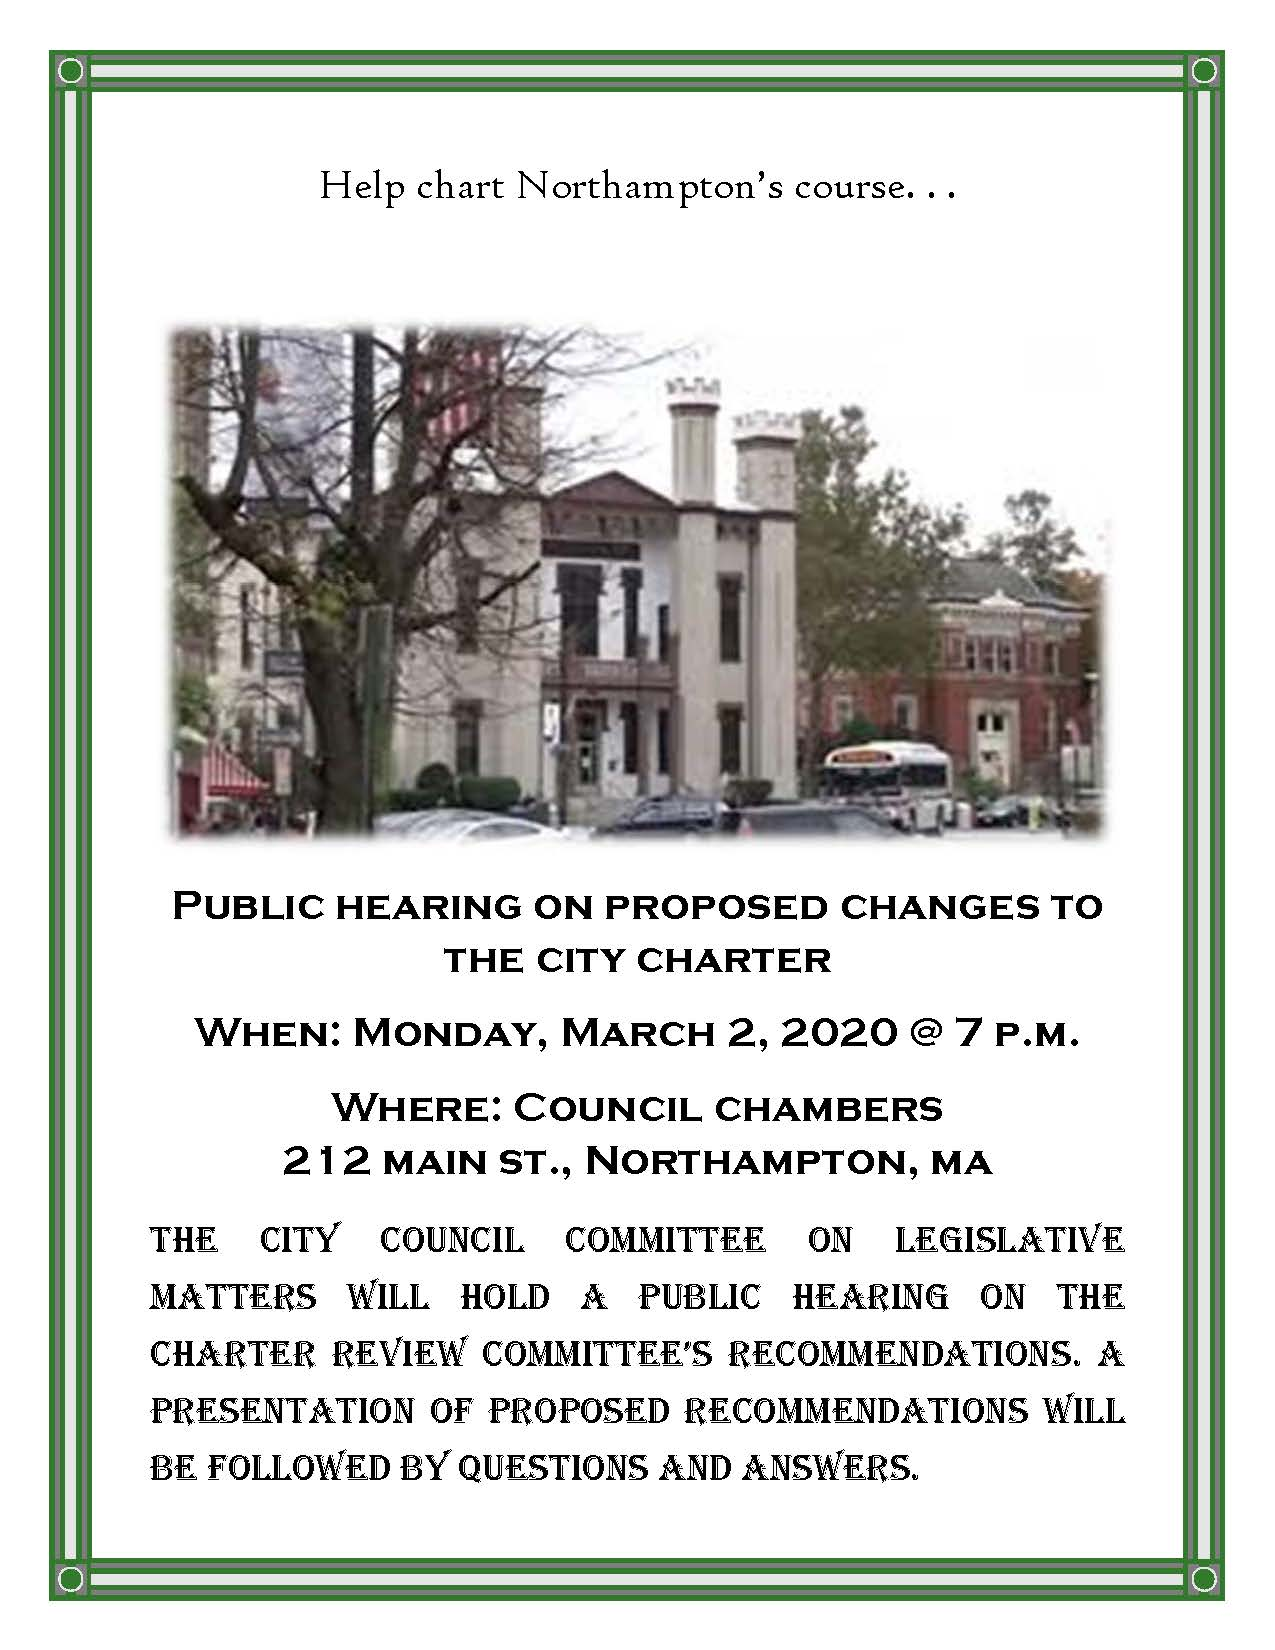 Image of Charter Public Hearing flyer